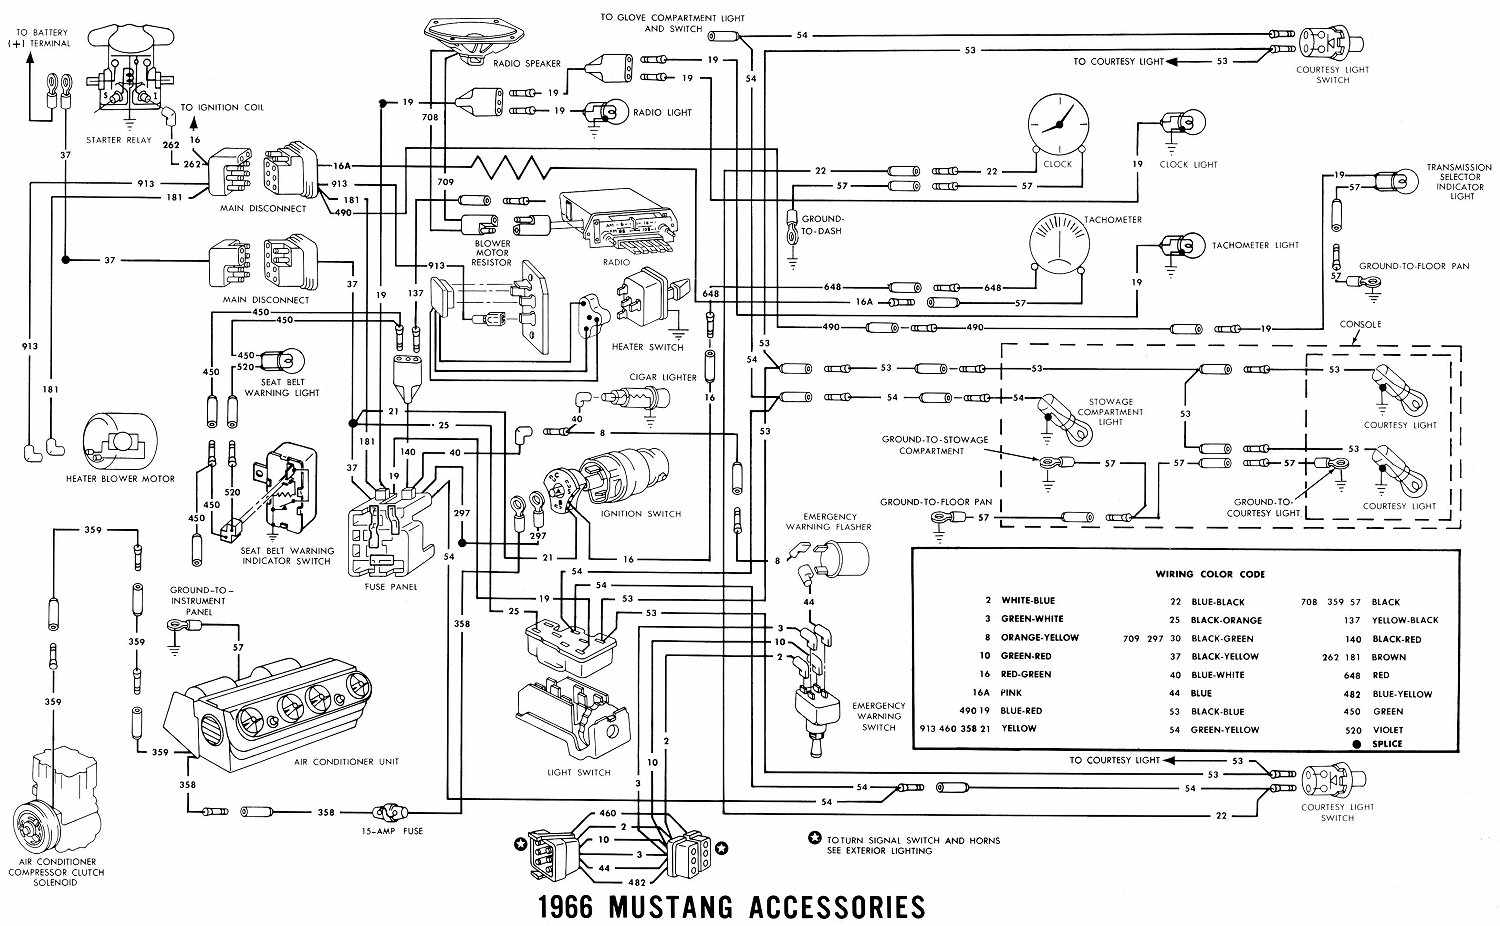 Yamaha Fz 150 Wiring Diagram 28 Images G8 Accessories Electrical Of 1966 Ford Mustang1 V Manual Mustang